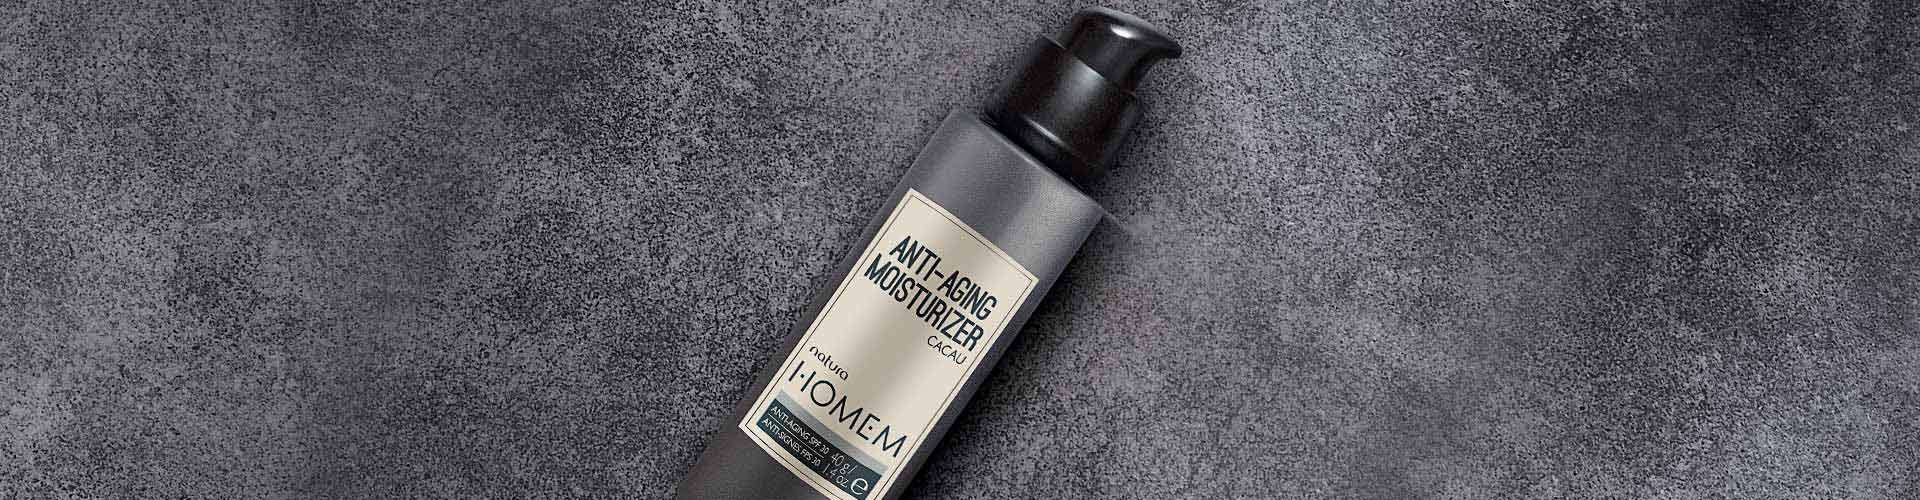 Facial moisturiser: do men need one too?